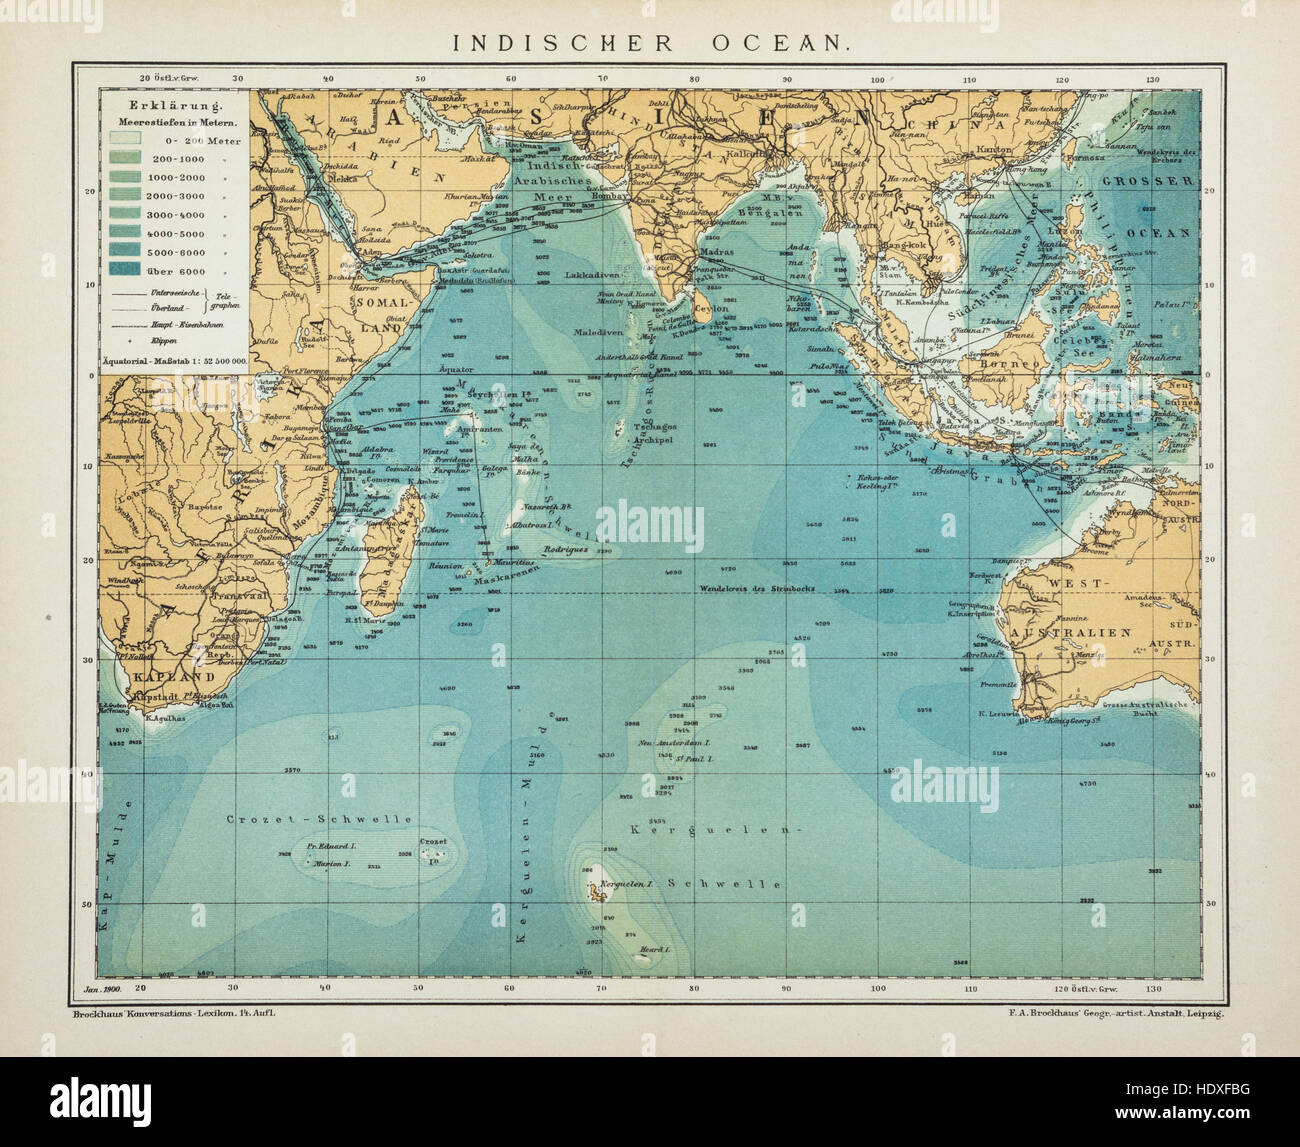 Indian Ocean old, antique map, vintage look - Stock Image